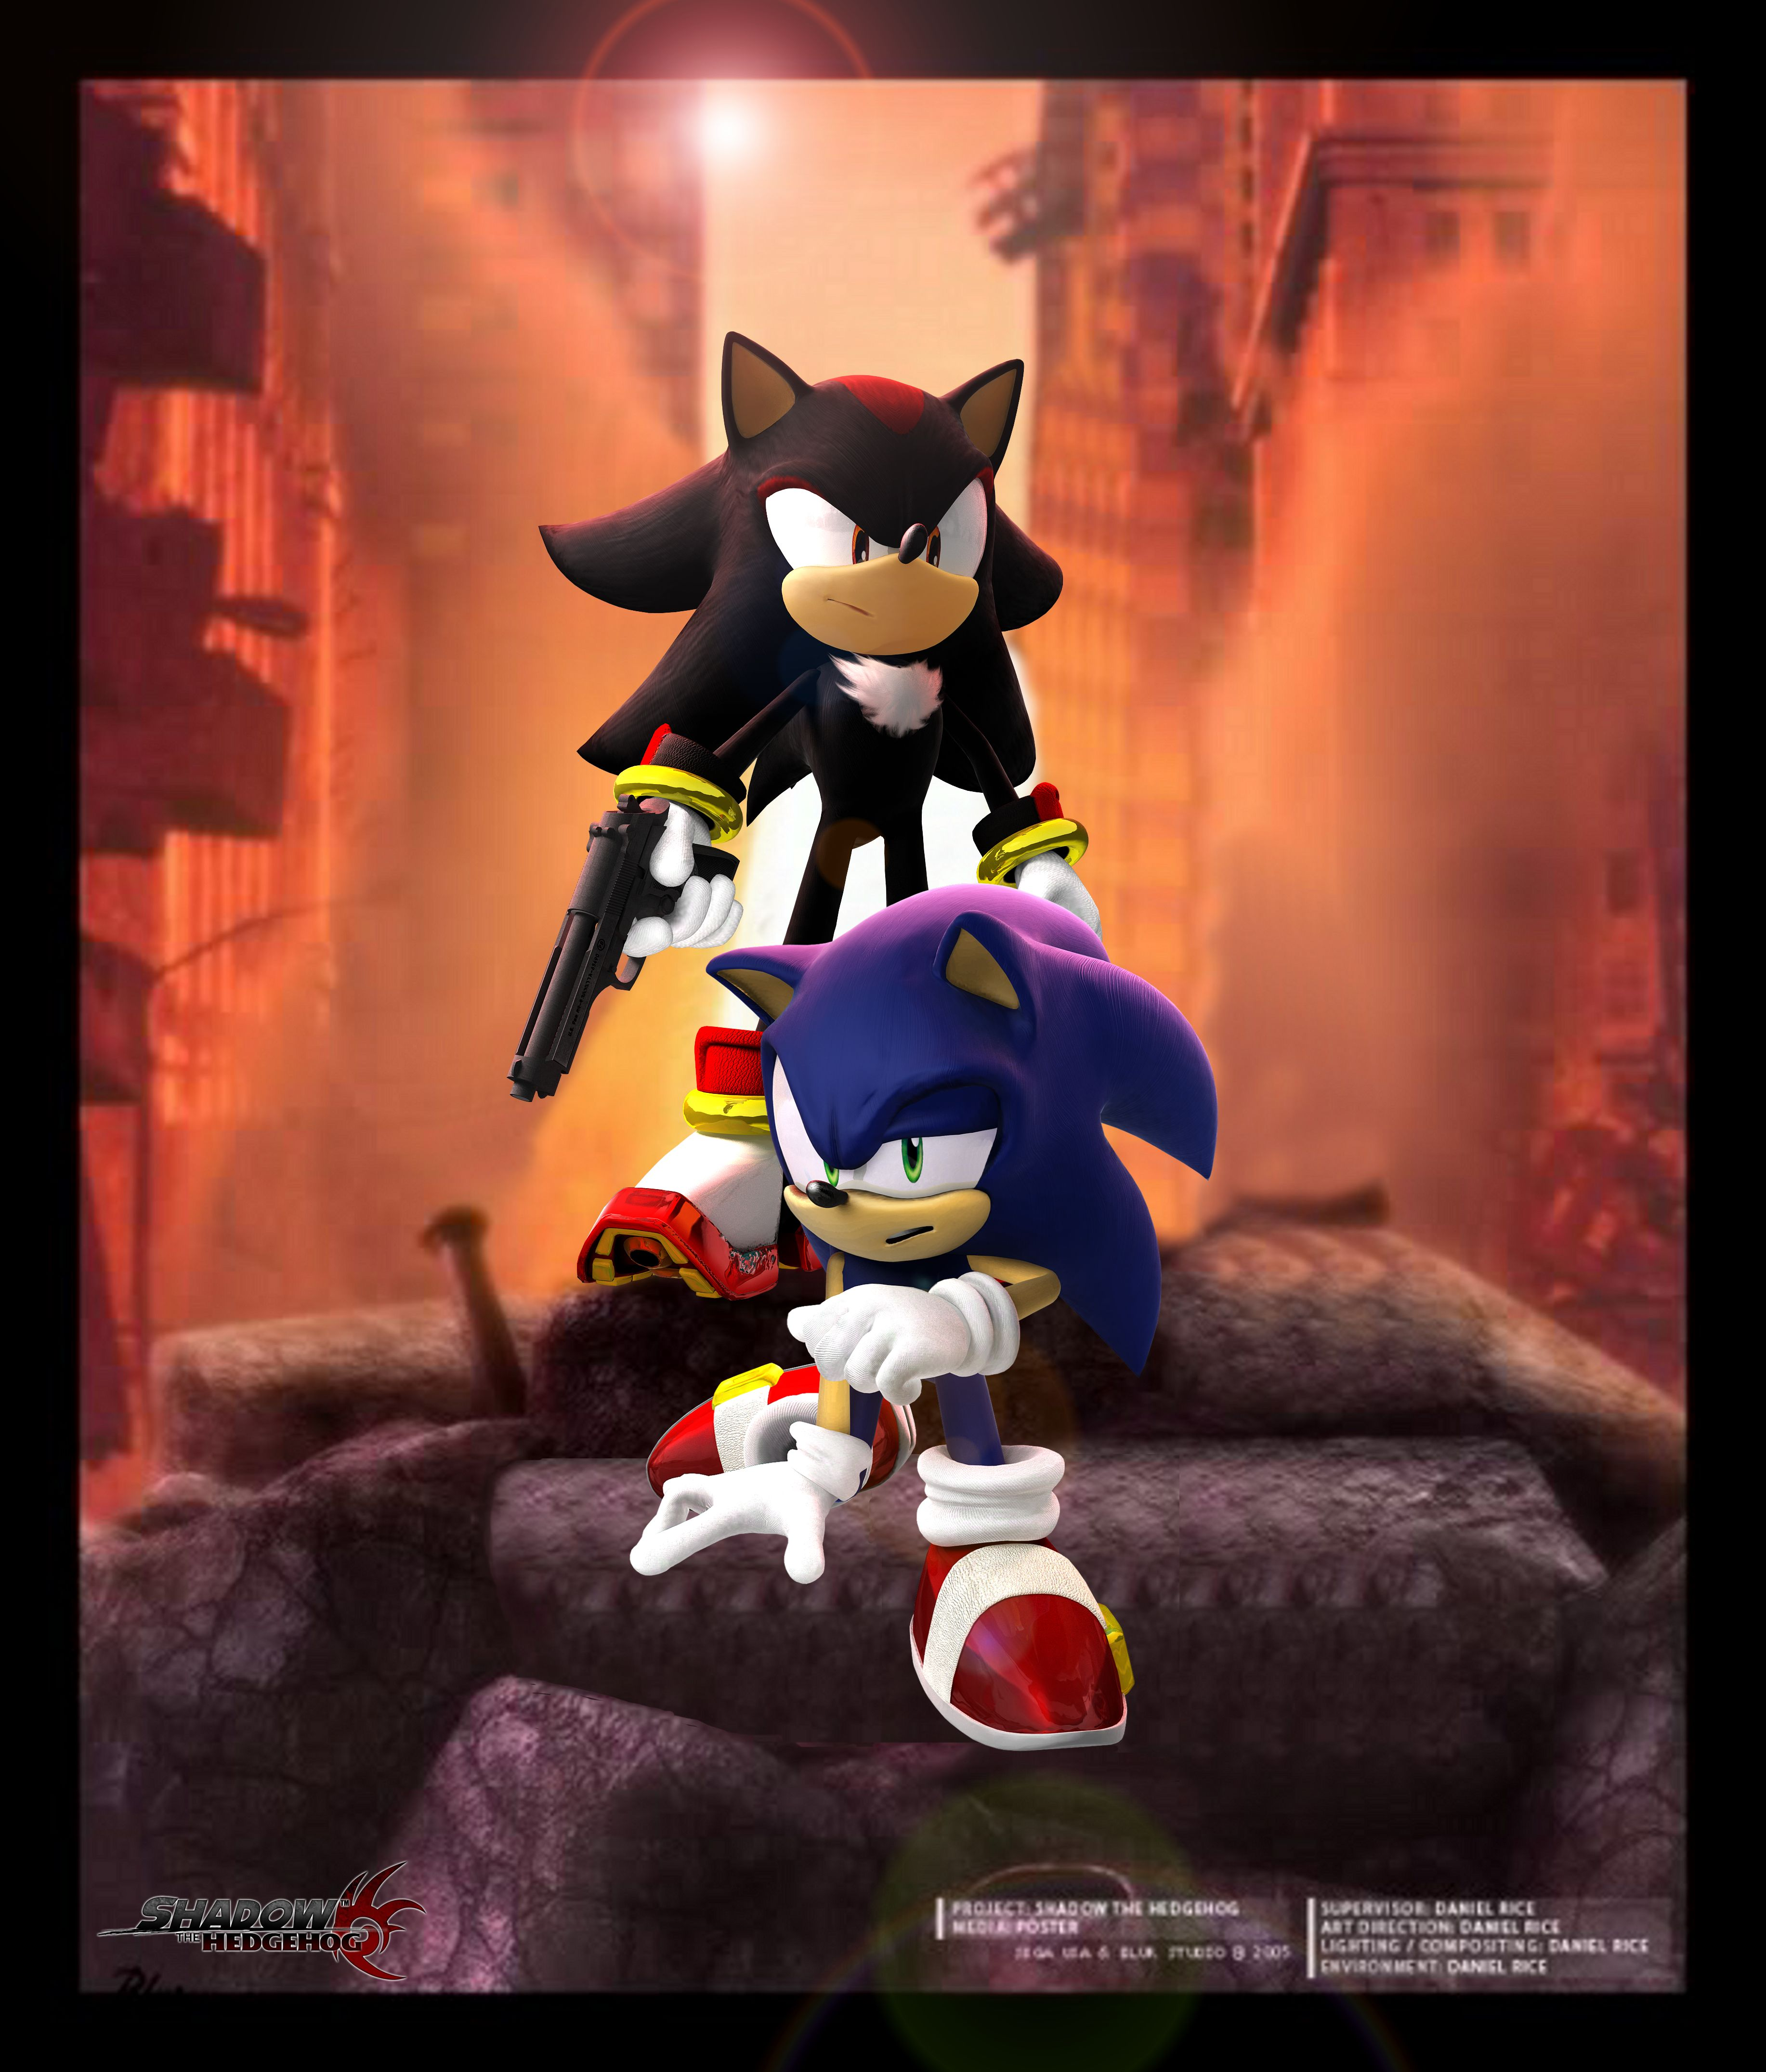 Sonic: ( Trying To Get Up) Shadow, You Know We Can Fix